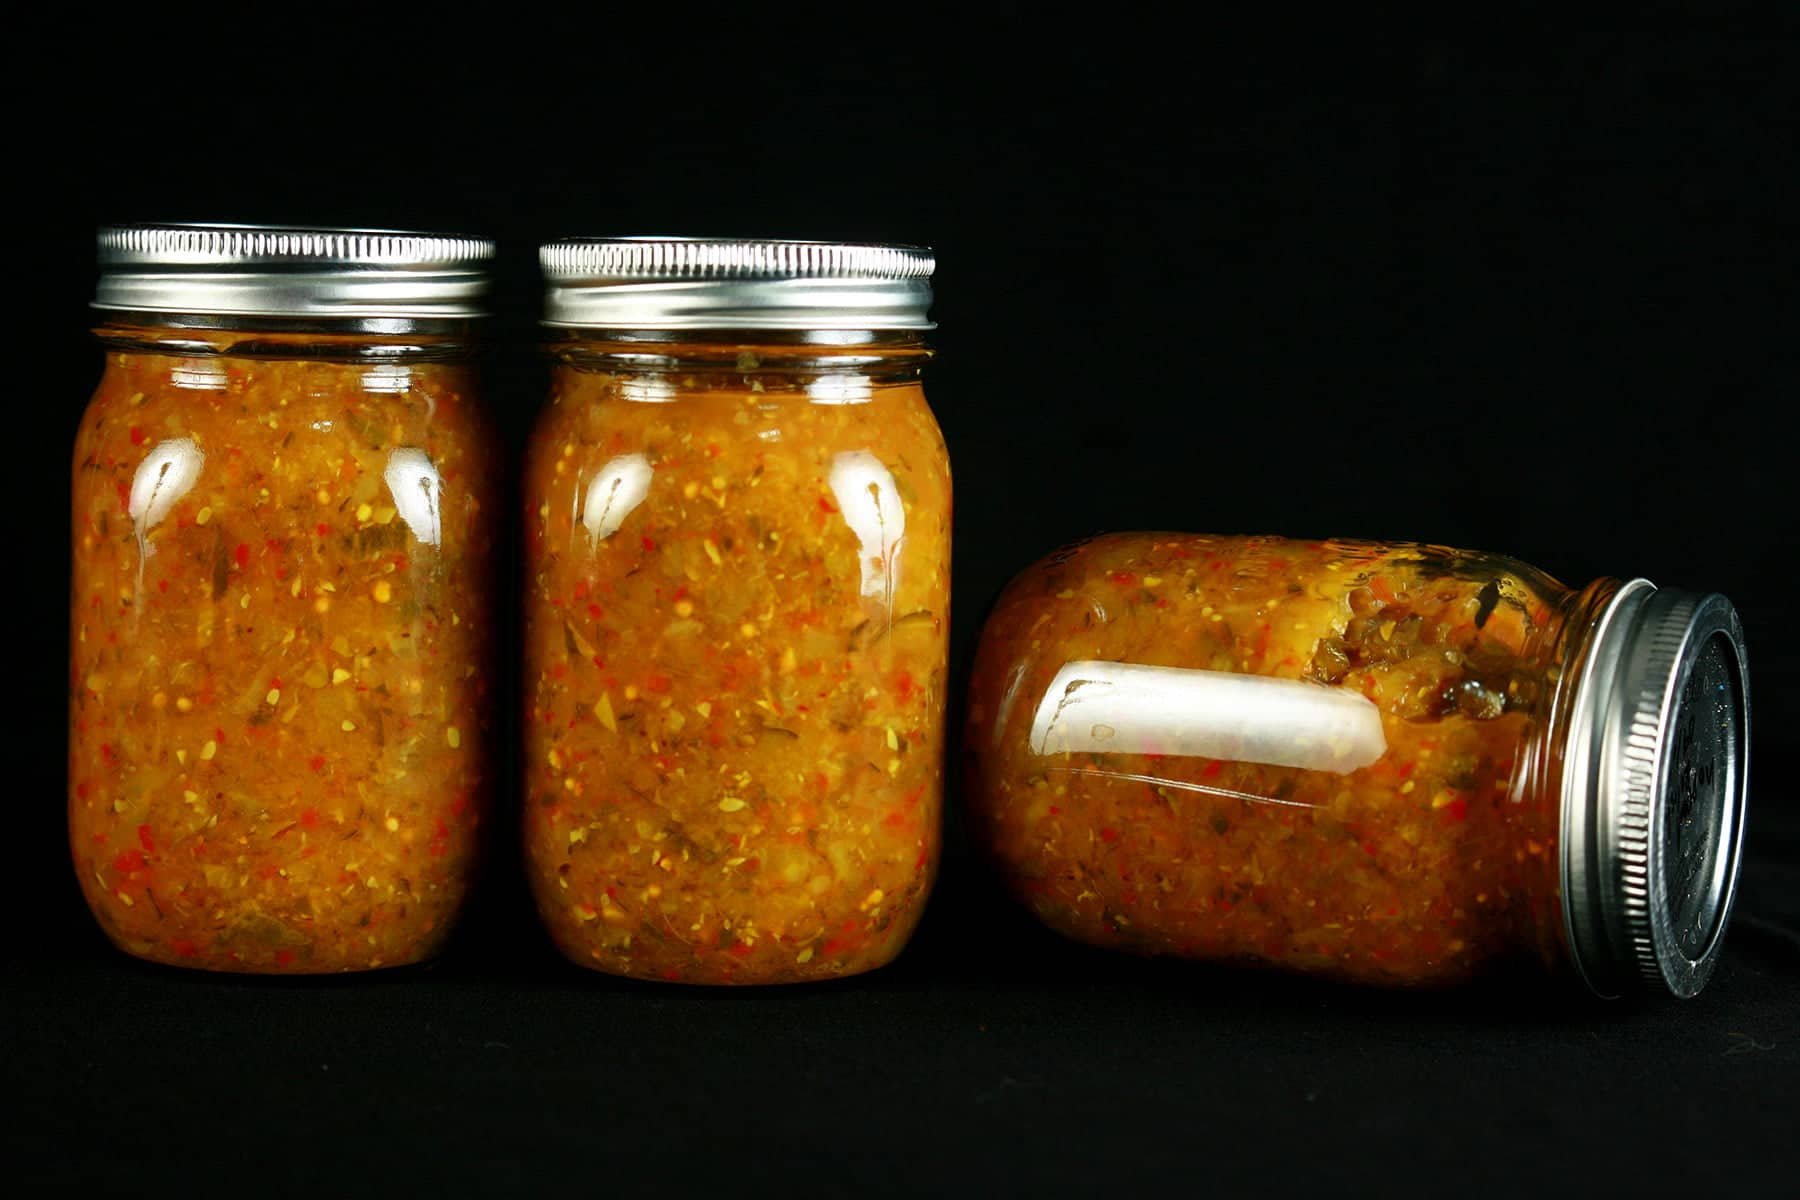 3 jars of Hoppy Dill Pickle Relish. It's a golden orange relish with flecks of dark green and red throughout.